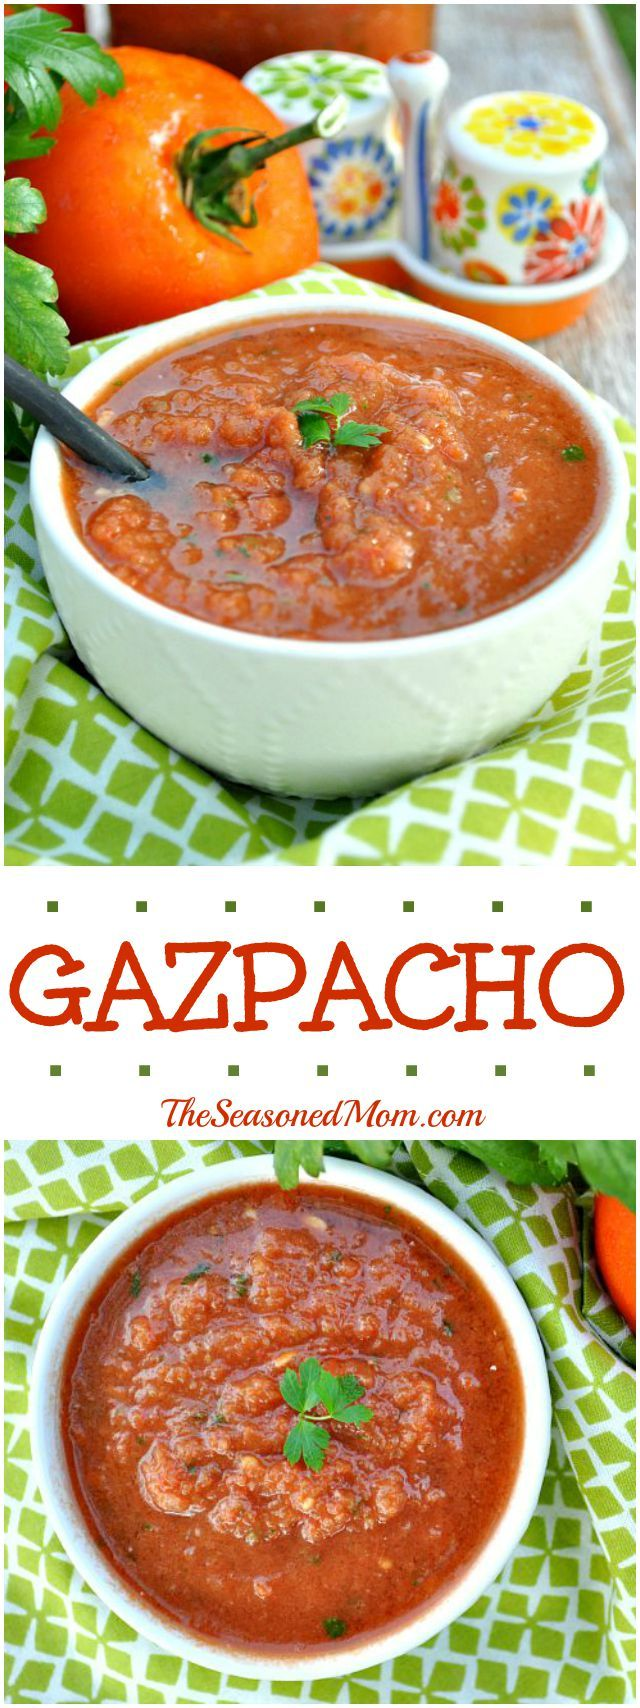 This fresh and healthy Gazpacho is a delicious clean eating soup that's ready in minutes. Toss everything into the blender and puree!